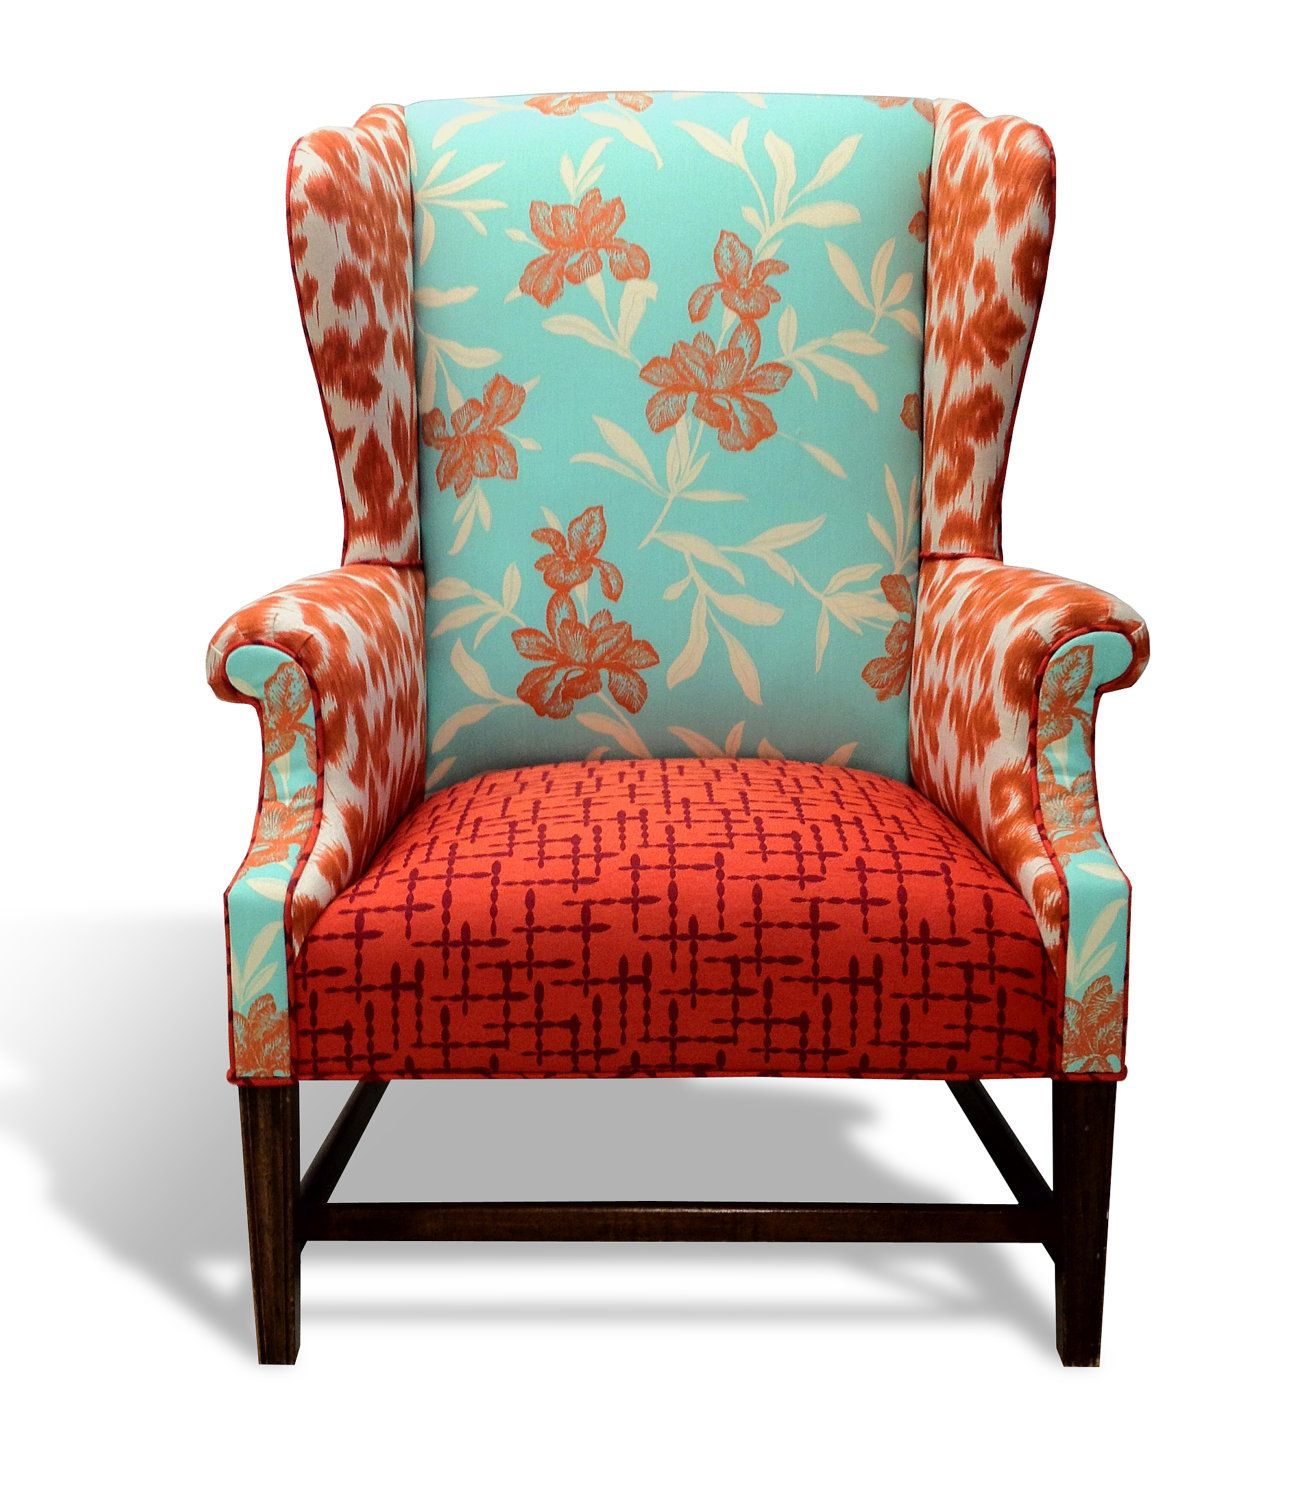 Unique Armchairs The Amber Wingback Chair Redressed Vintage With Coastal